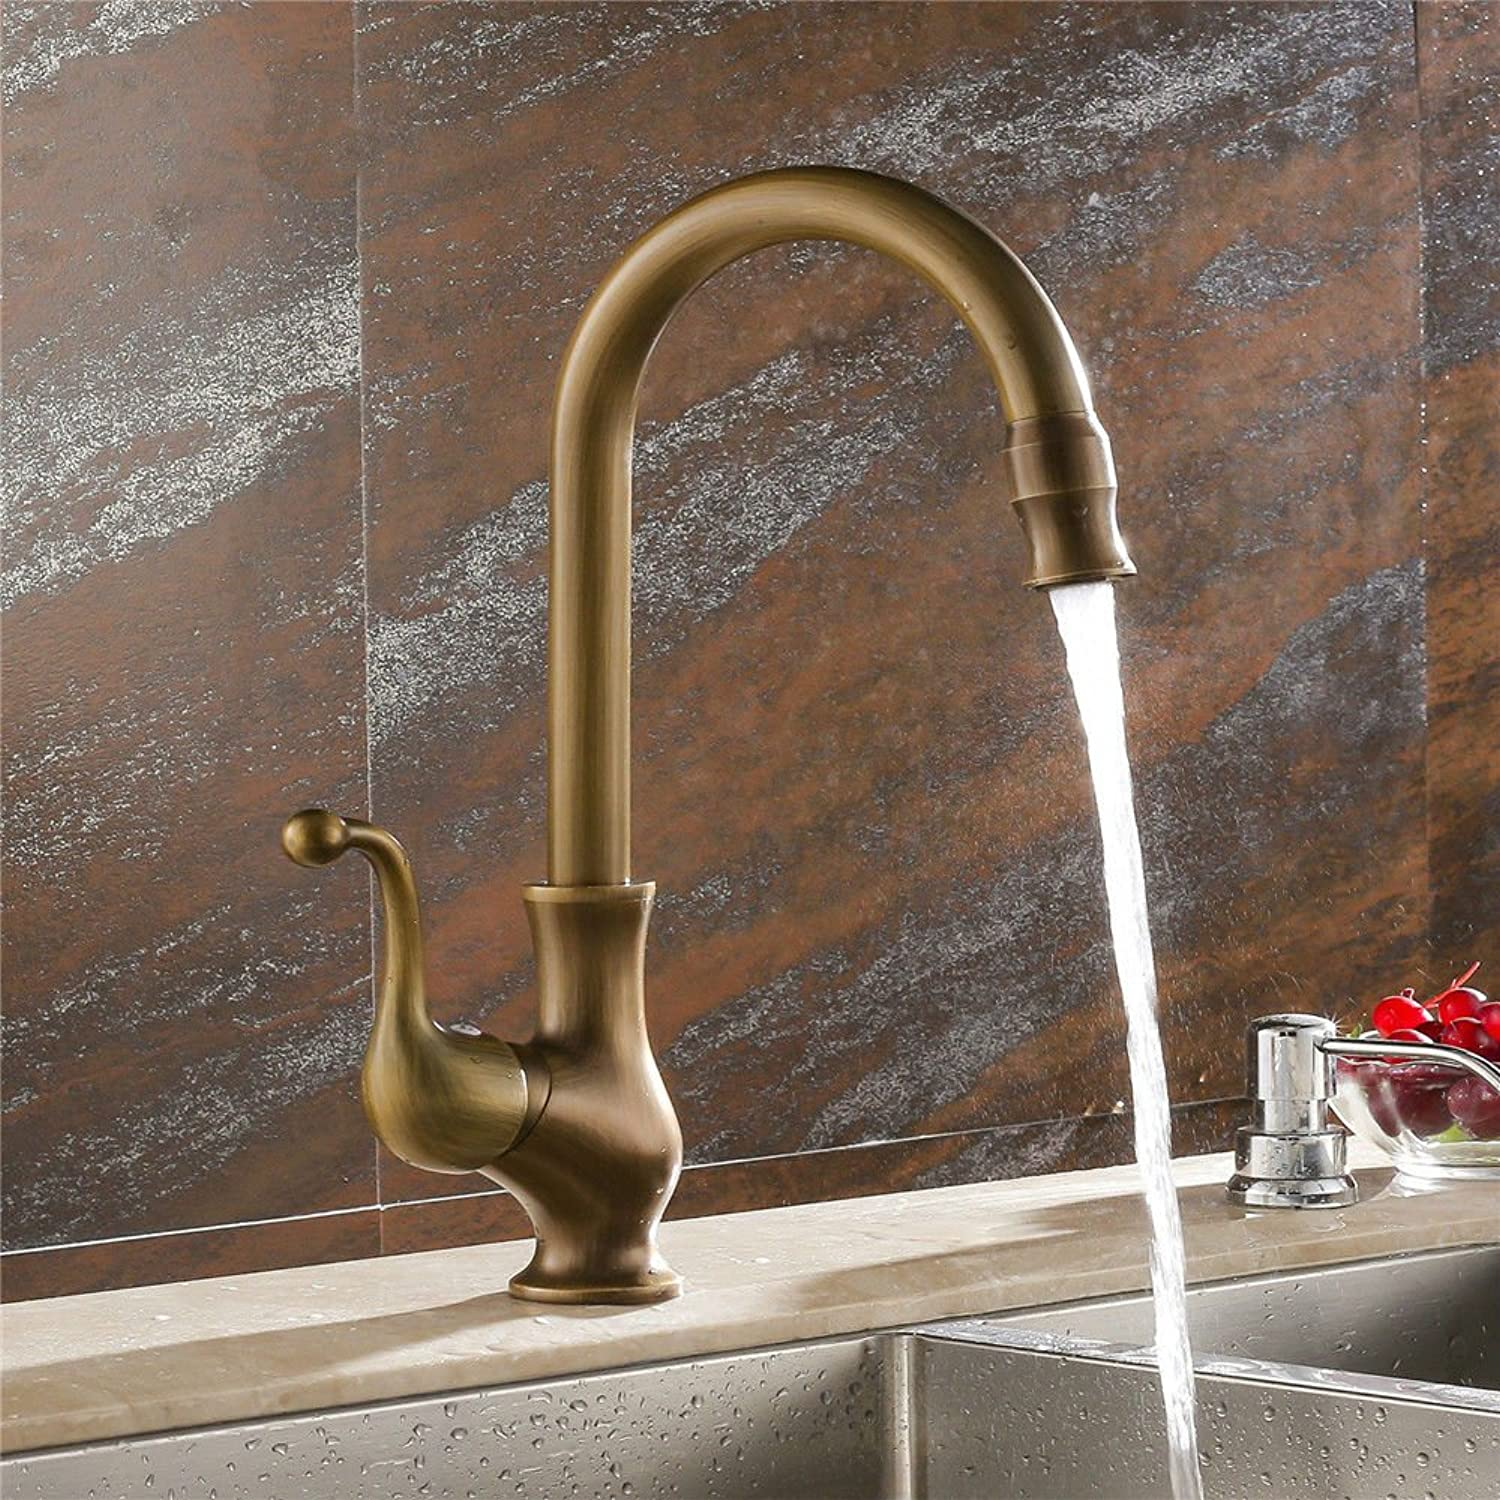 Commercial Single Lever Pull Down Kitchen Sink Faucet Brass Constructed Polished European Style Copper Antique Bathroom Kitchen Faucet Hot and Cold Sink Faucet redatable Sink Faucet